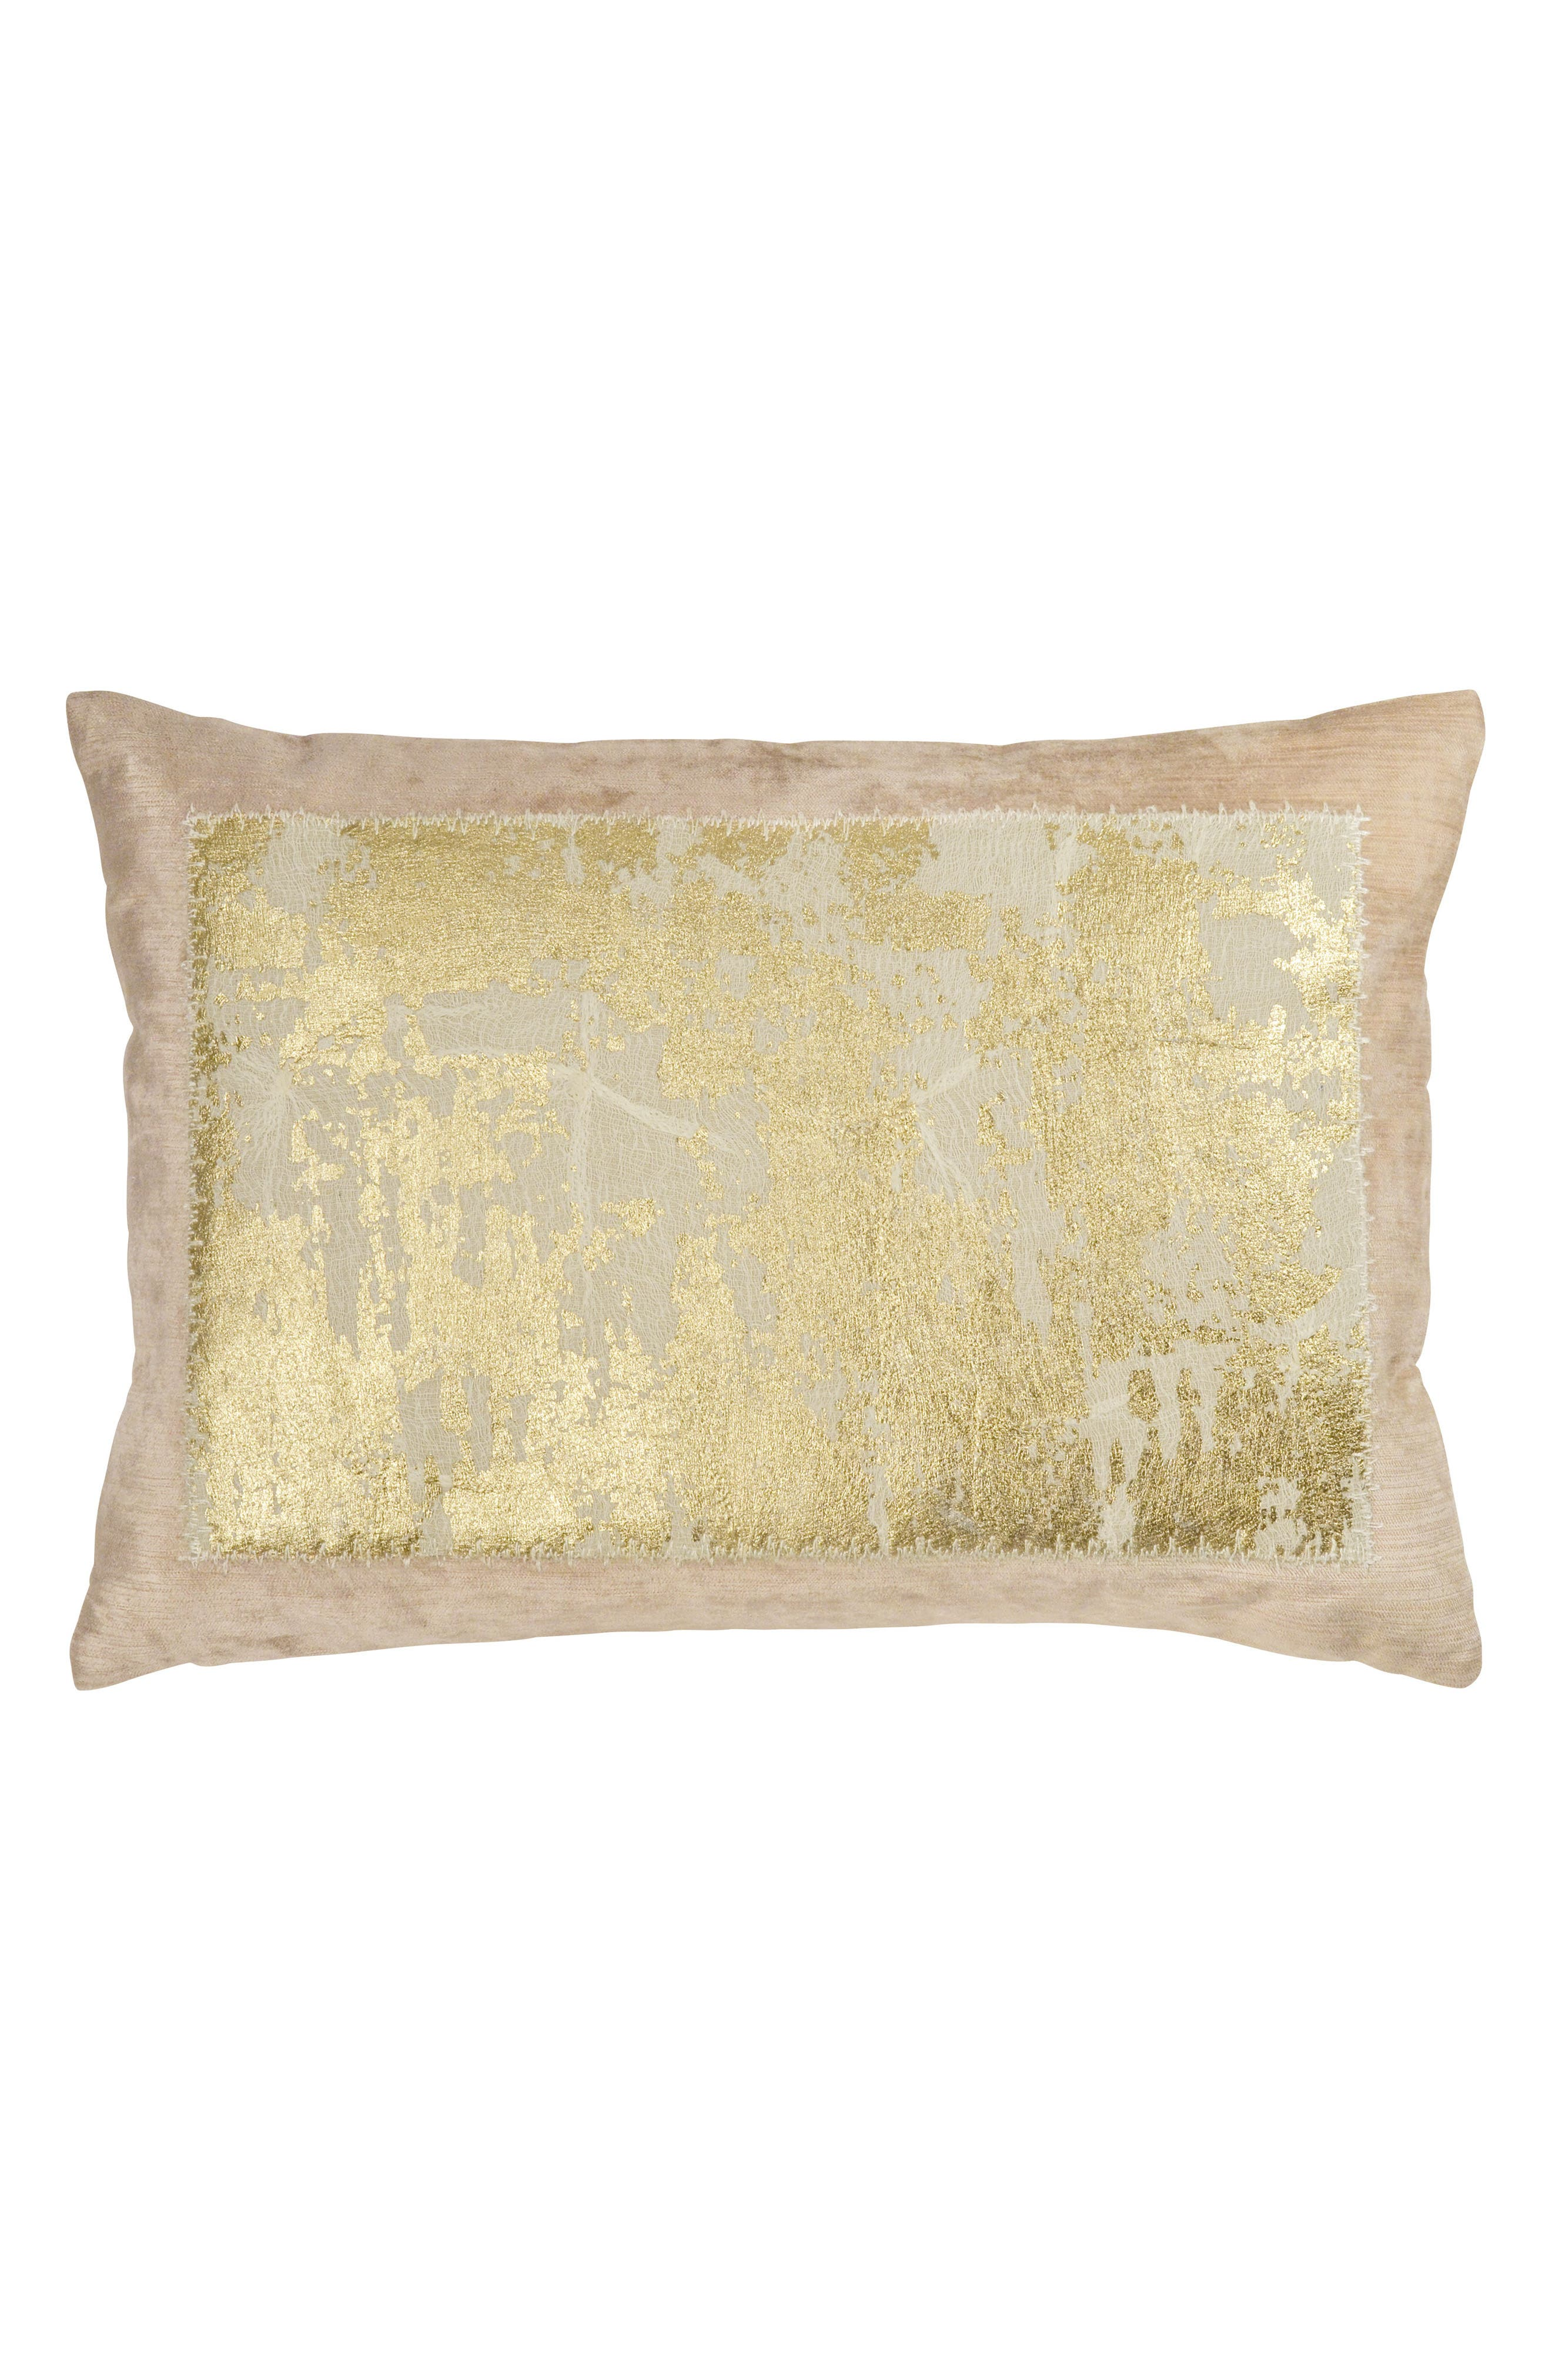 Distressed Metallic Accent Pillow,                         Main,                         color, BLUSH